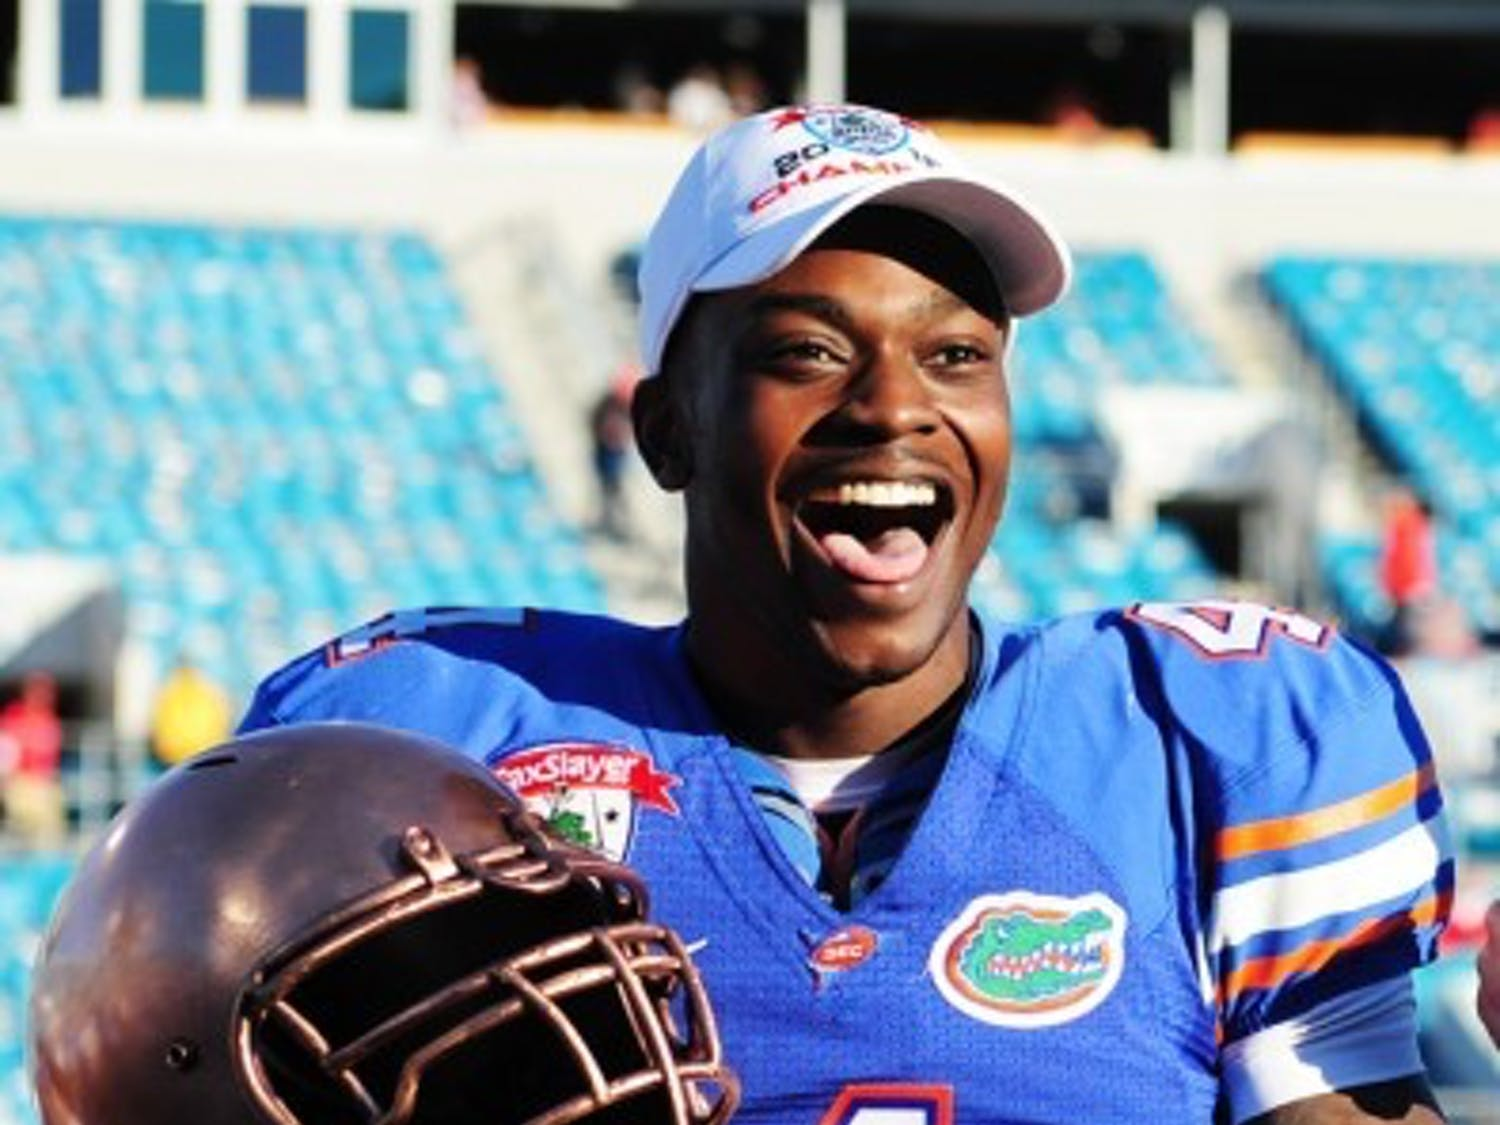 Junior wide receiver Andre Debose smiles as he accepts the trophy for Most Valuable Player at the Gator Bowl on Jan. 2.in Jacksonville. Debose hasn't replicated the success he had in 2011.